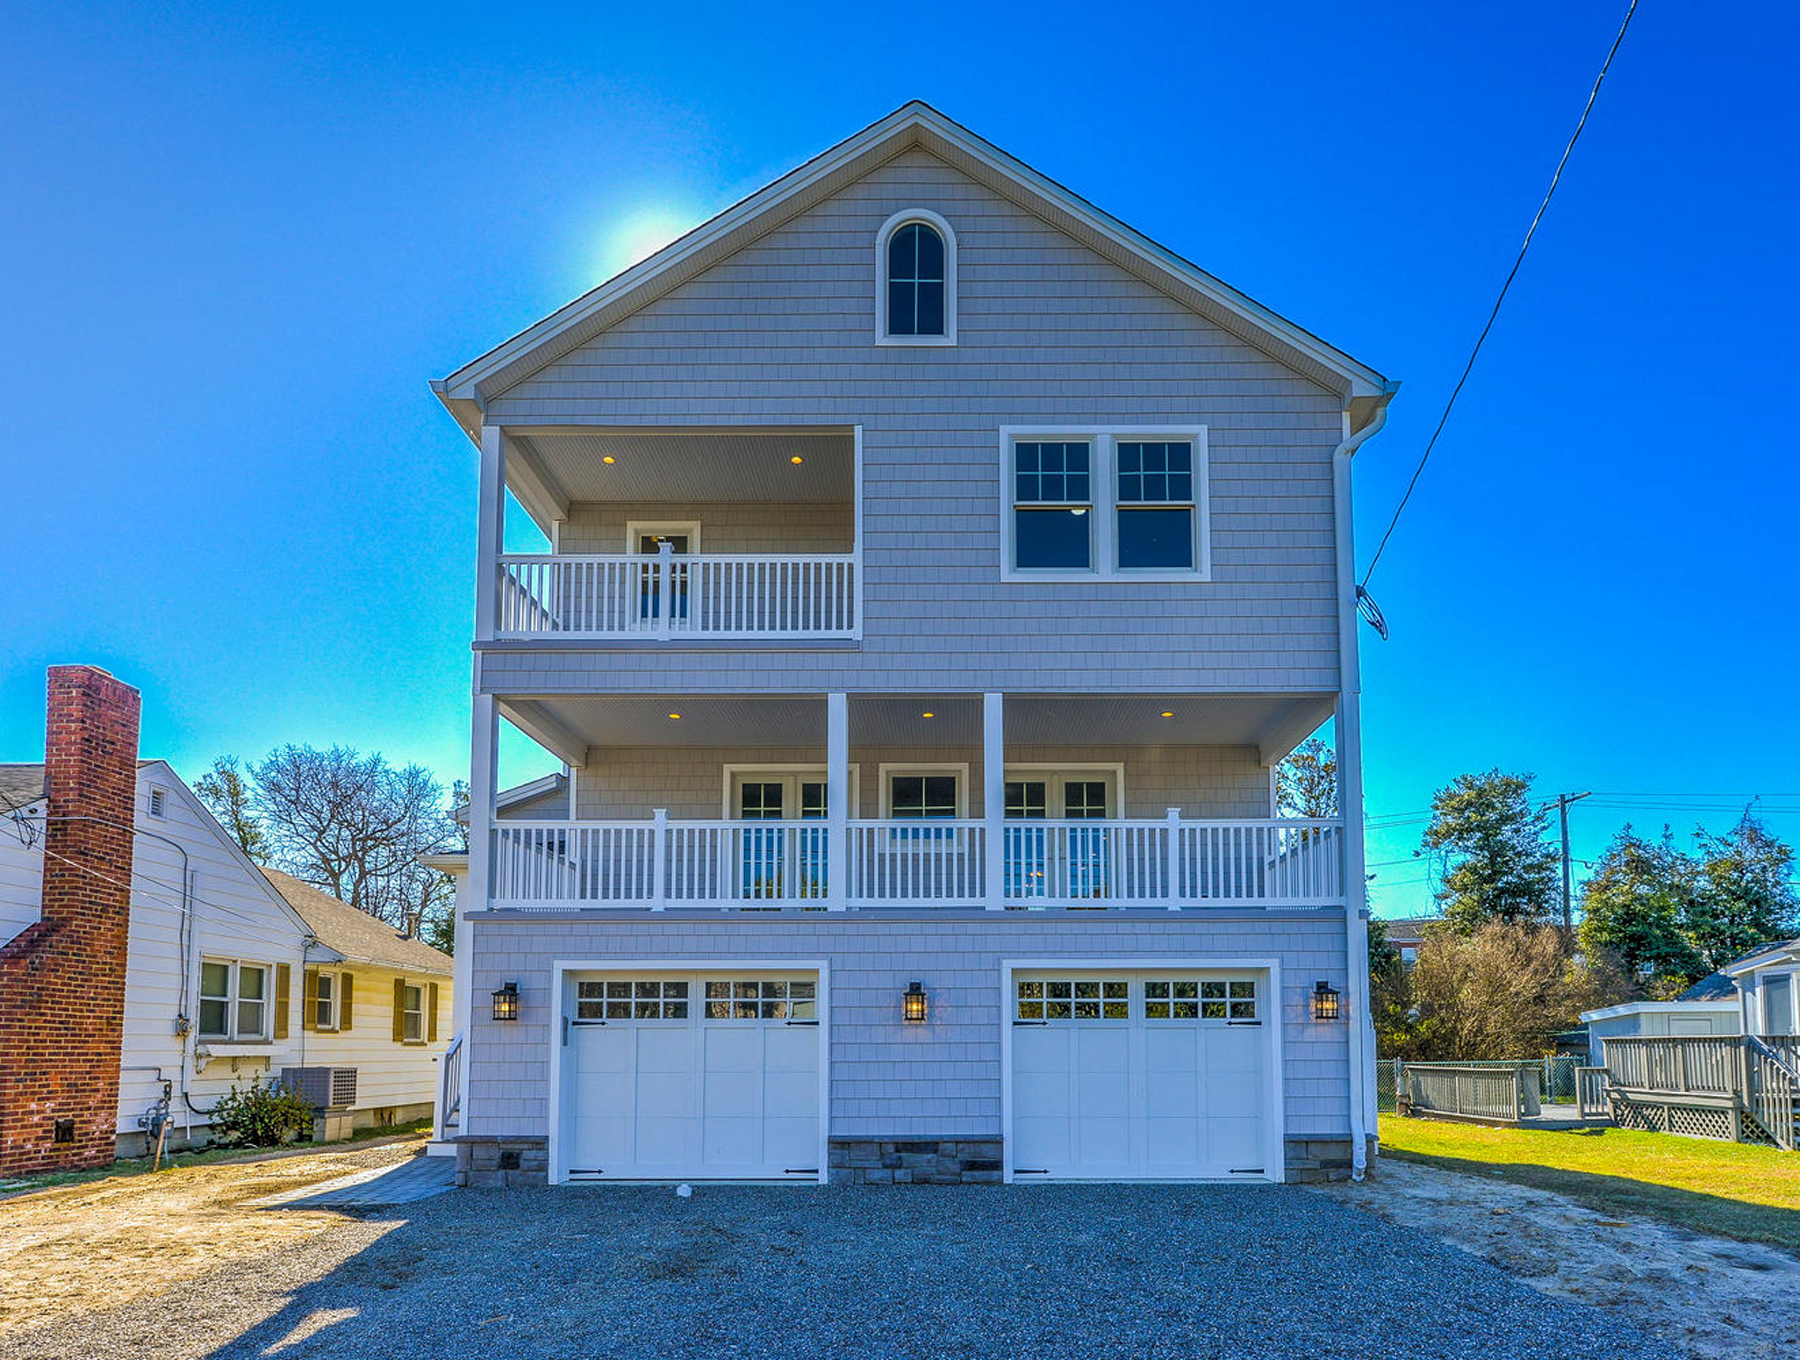 Single Family Home for Sale at Presenting Coastal Charm At It's Finest 306 Carter Avenue Point Pleasant Beach, New Jersey 08742 United States